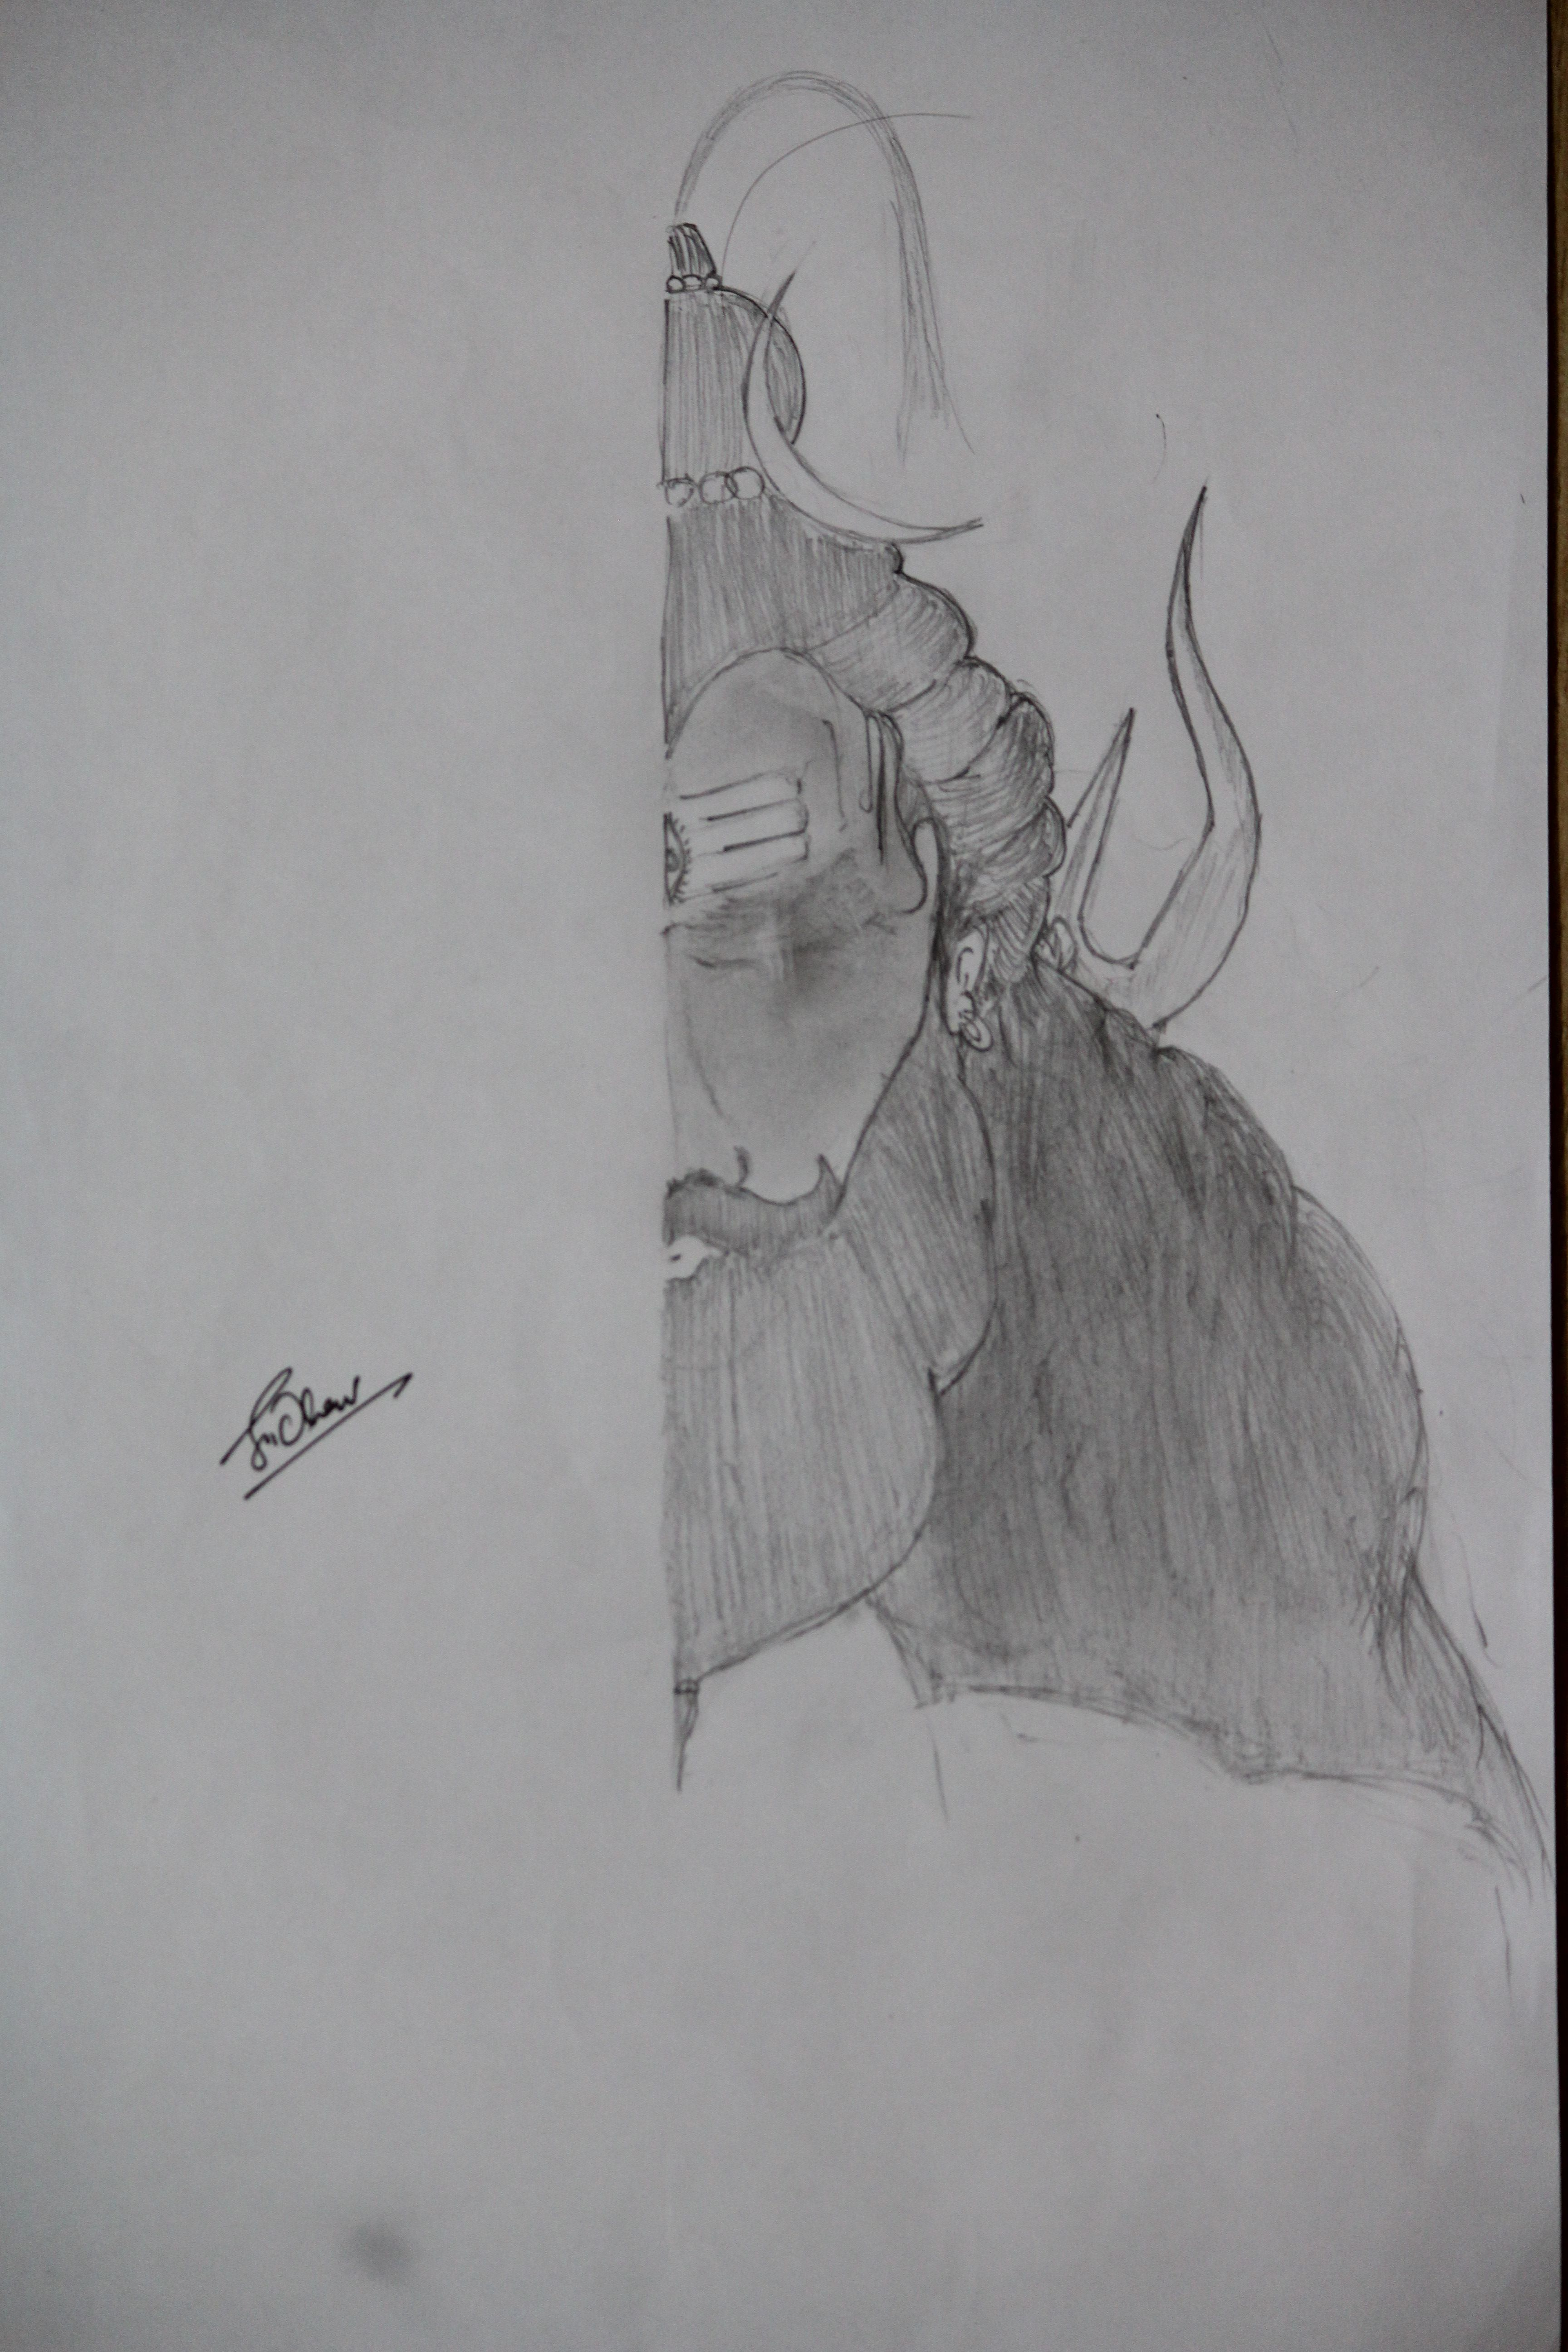 Shiva with beard shiva pencil drawings sketches art croquis kunst